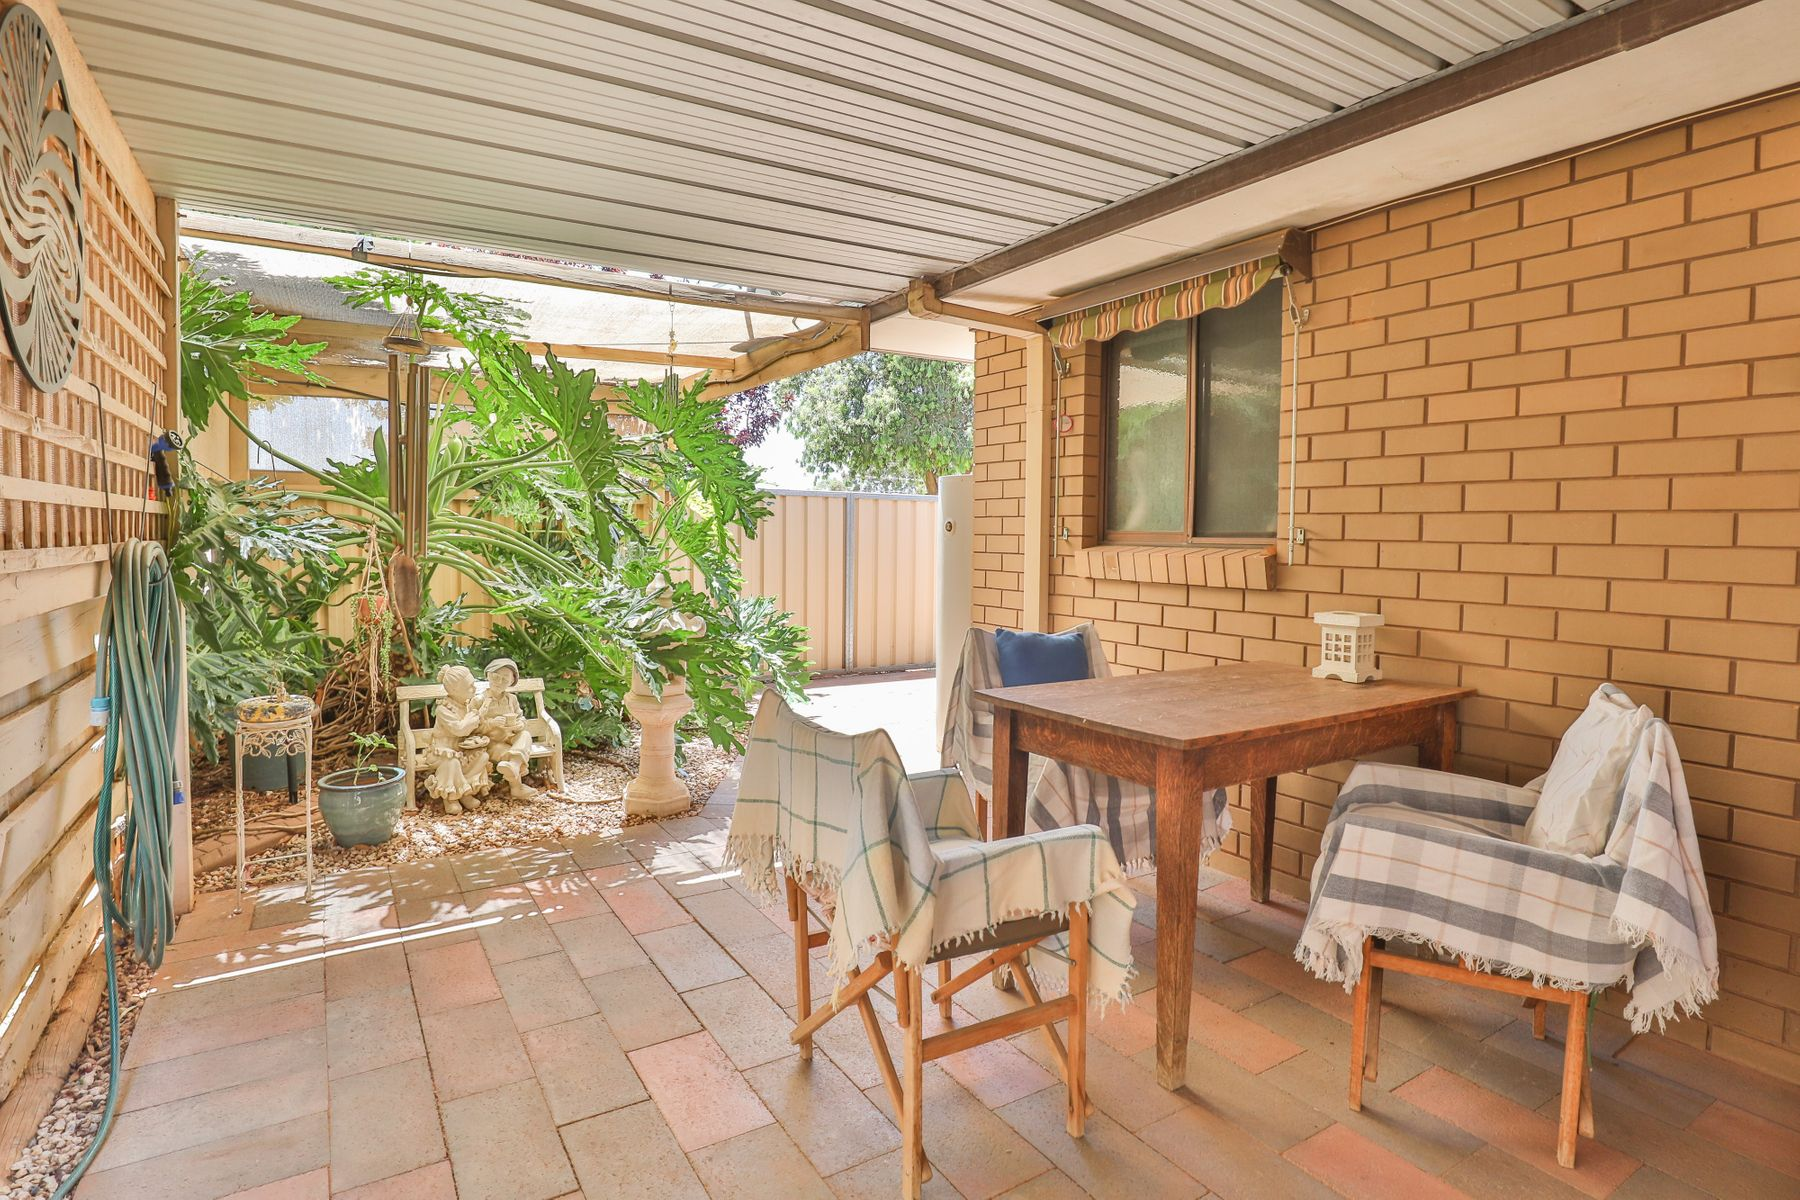 2/76 Riverside Avenue, Mildura, VIC 3500